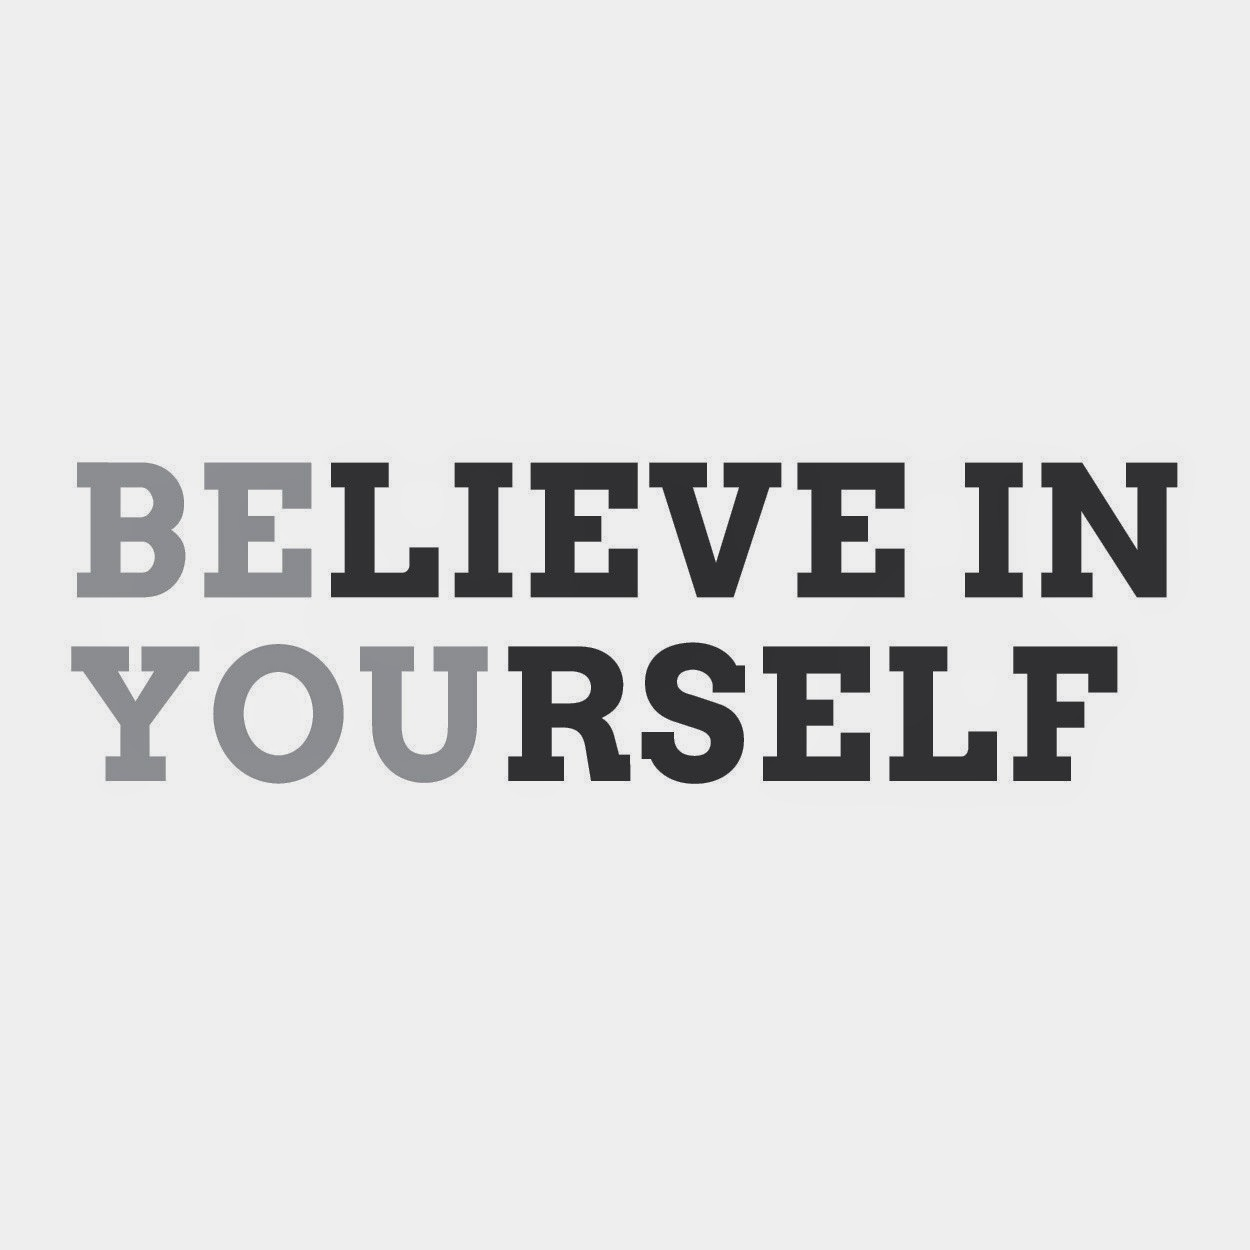 believe yourself, usko itseesi, sanonta, quote, quotes, treeni, training elämä ,life